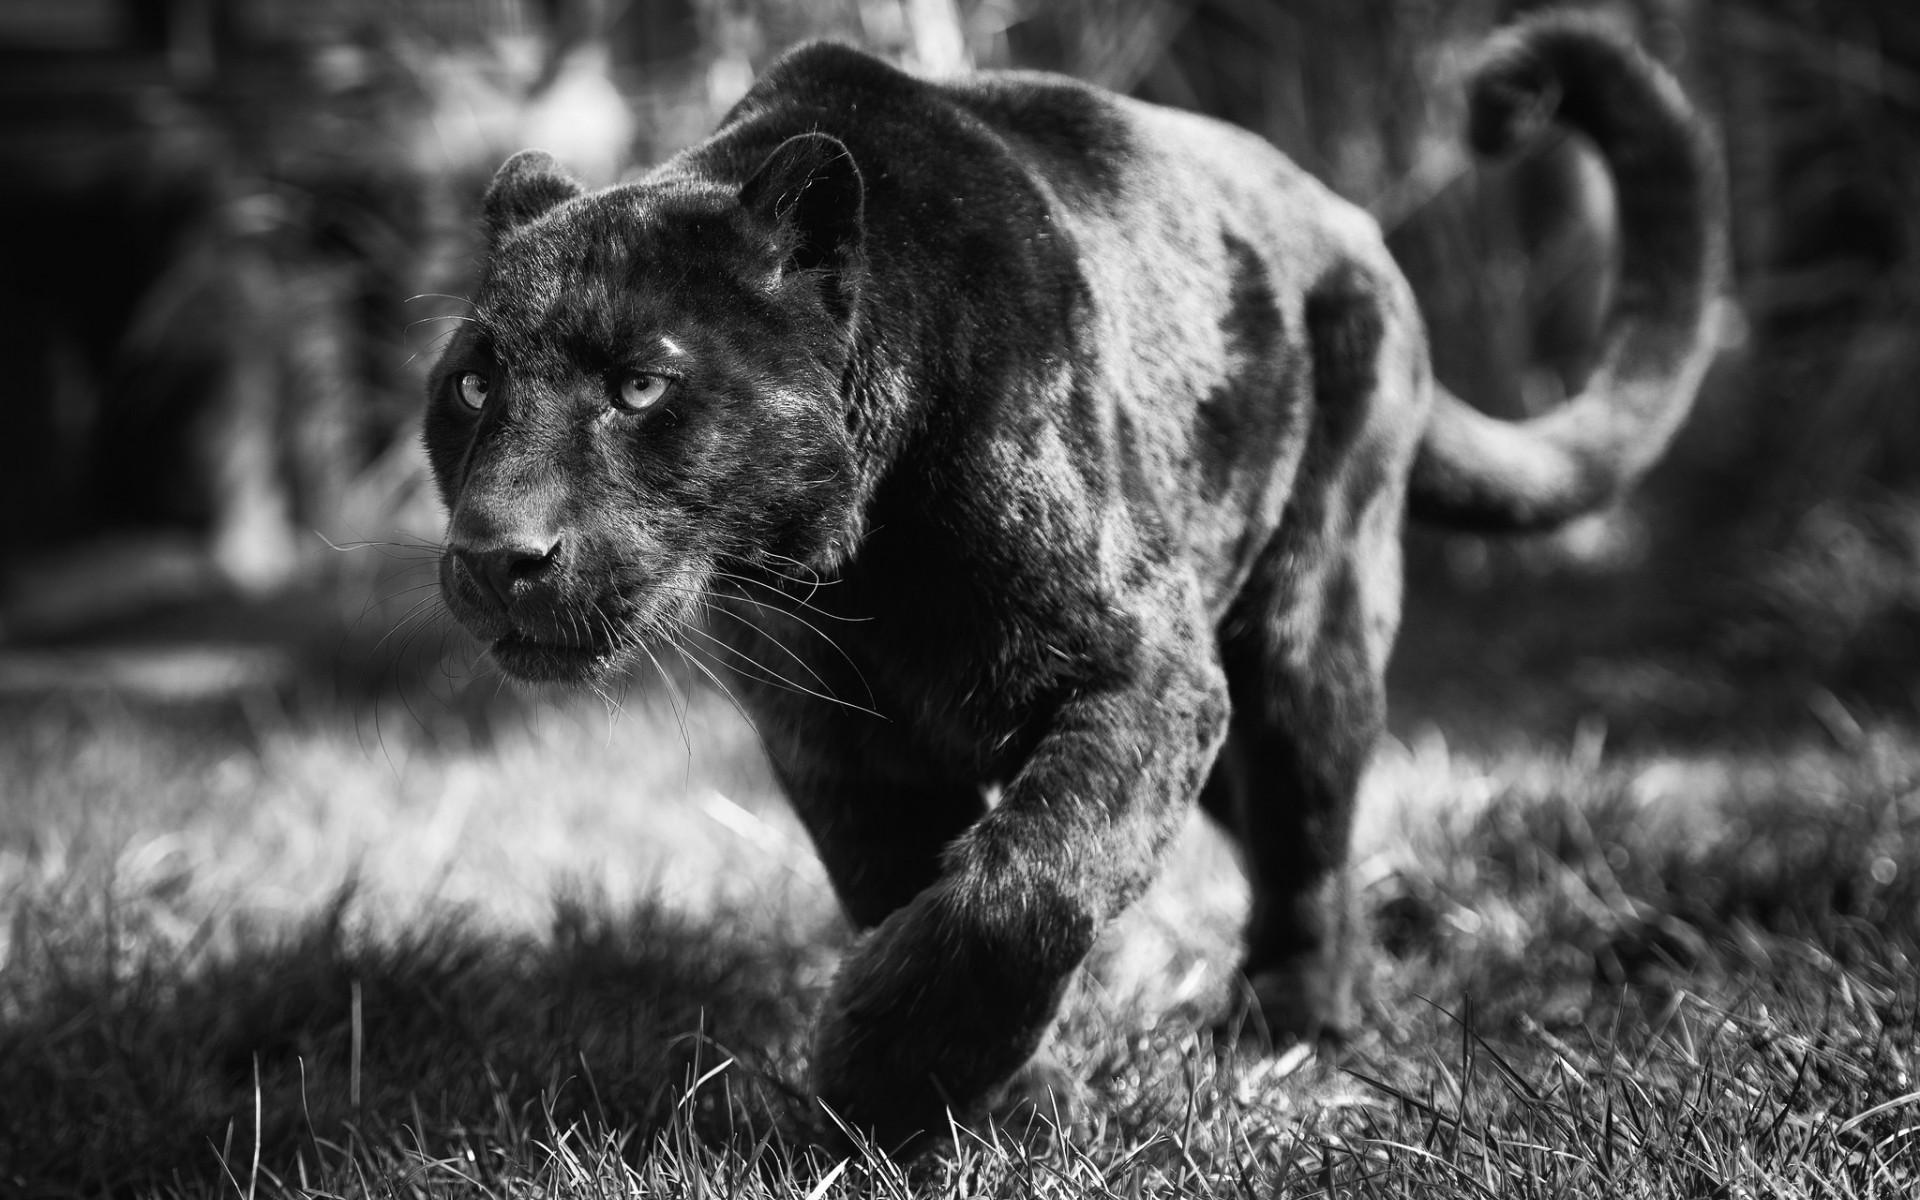 PC.8888, Black Panther HD Photo